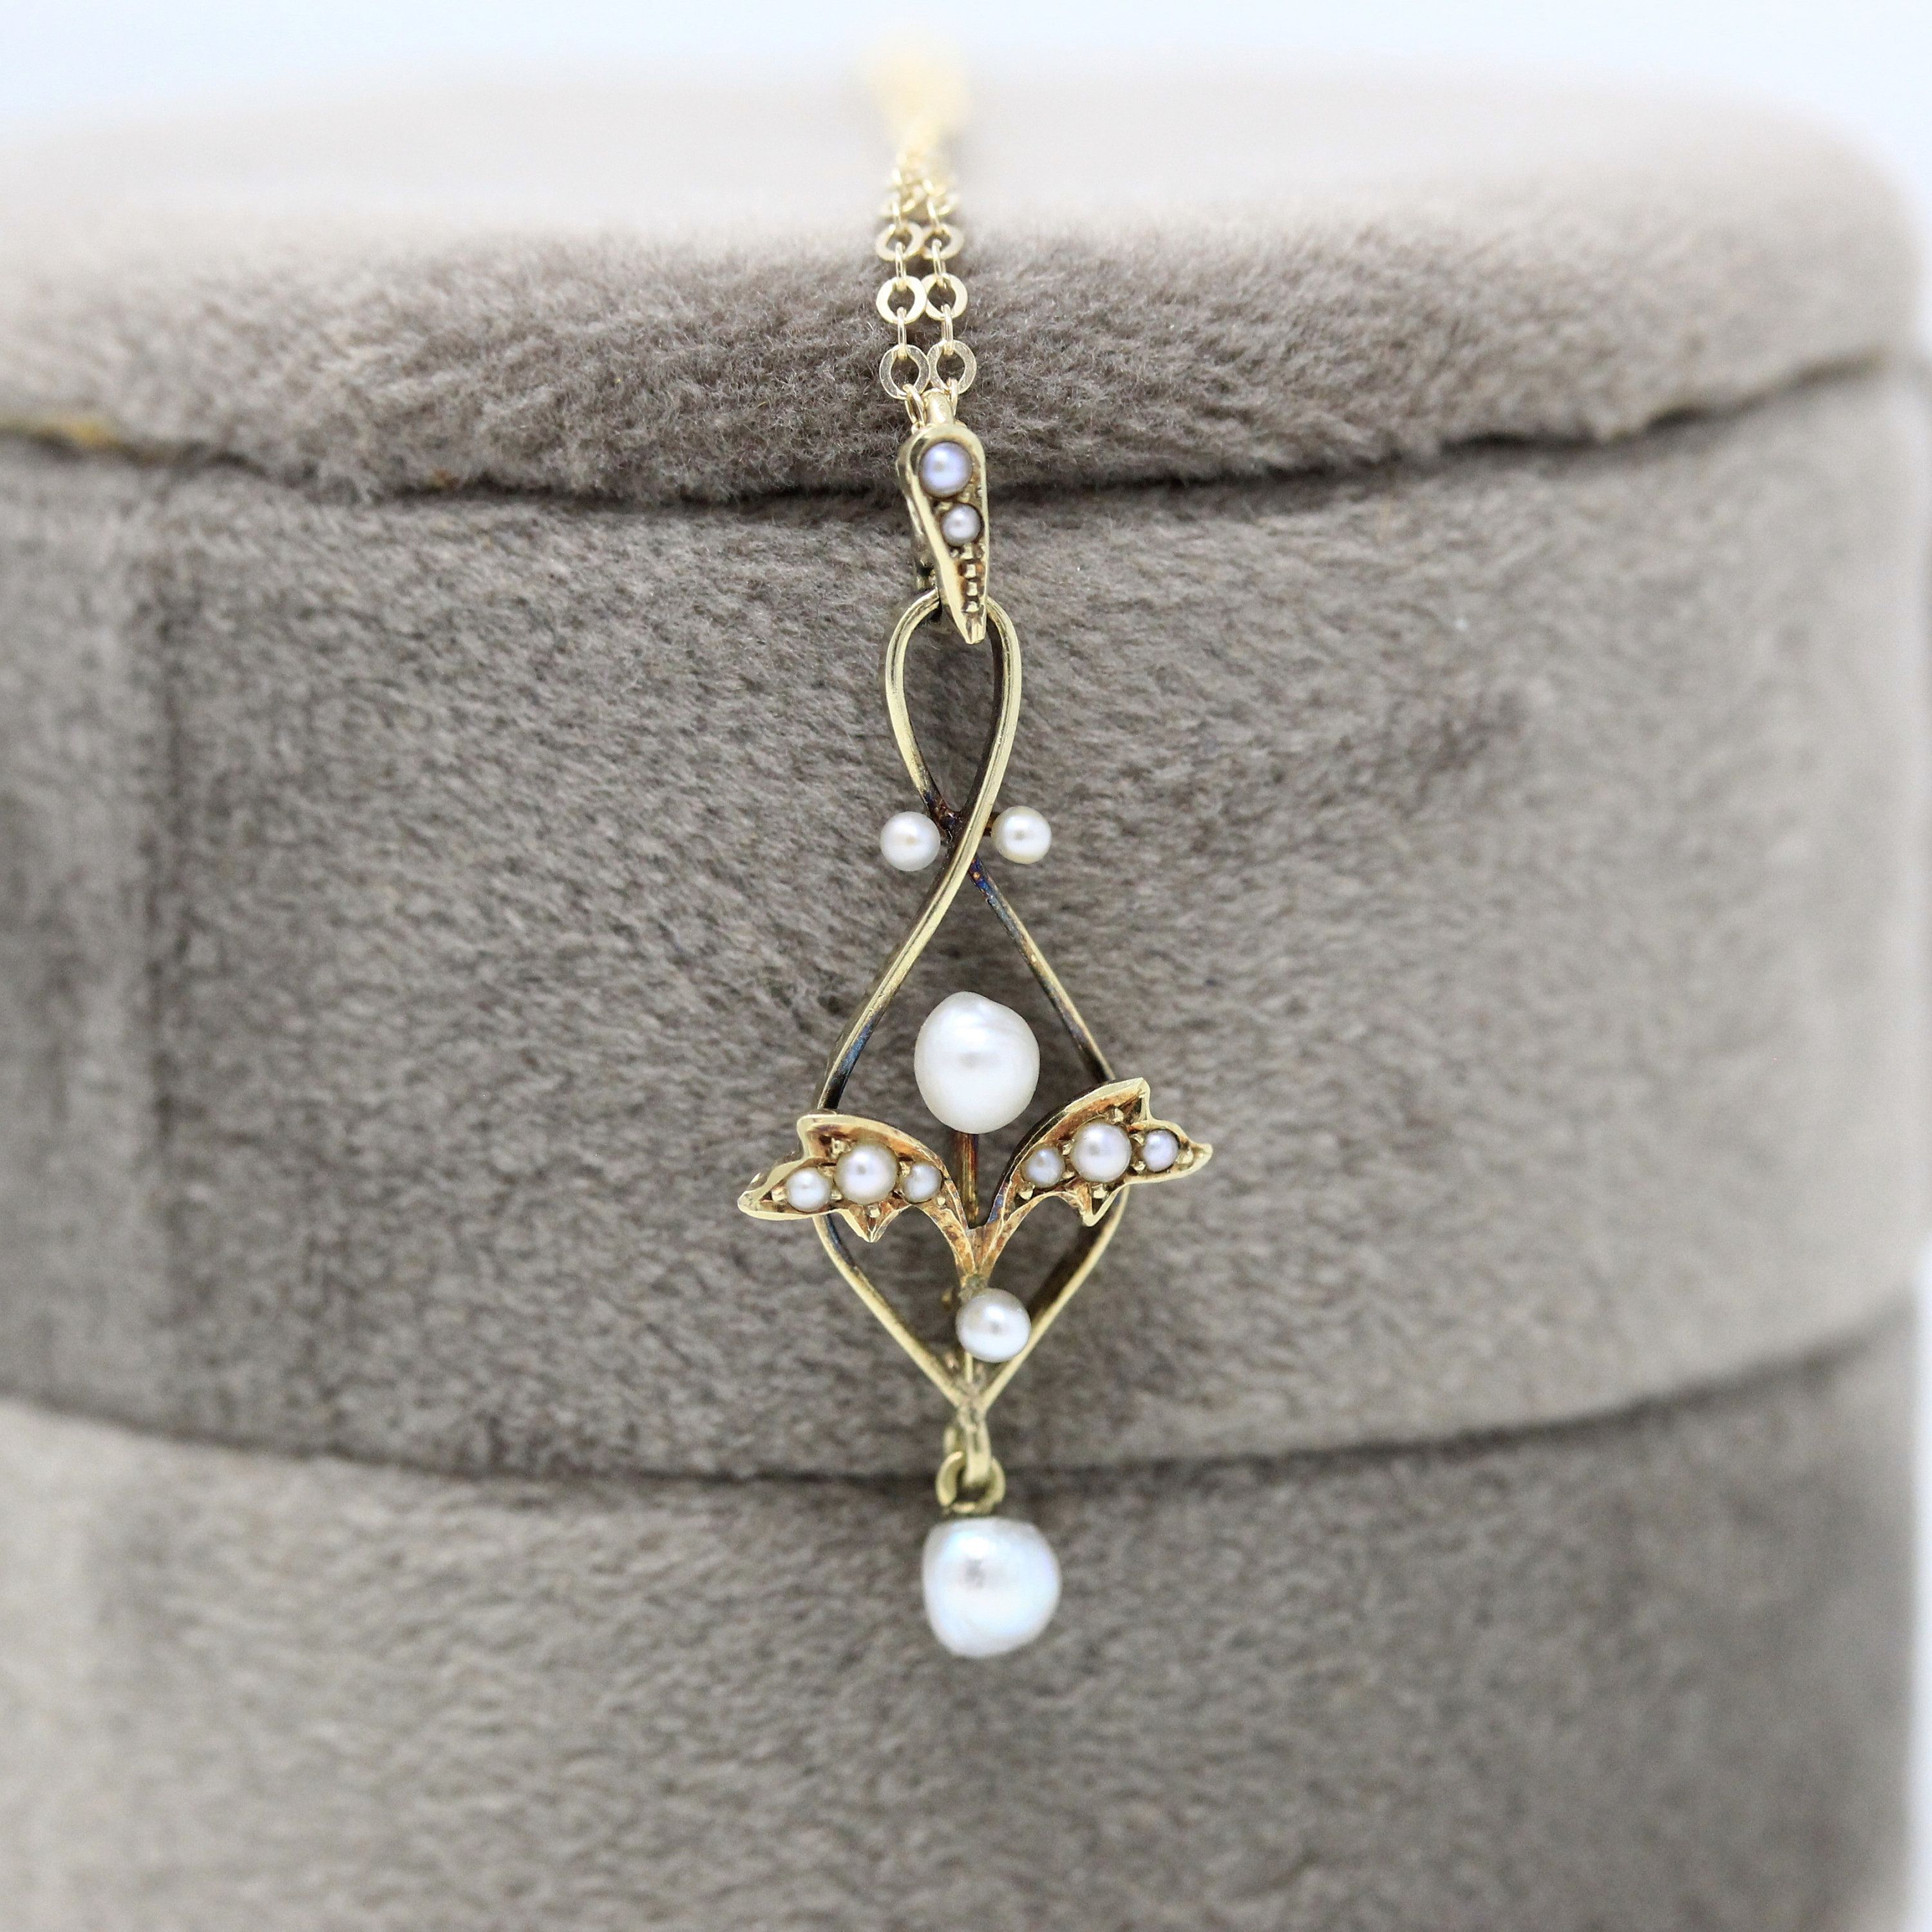 Art Deco 14K Yellow Gold DIAMOND and Seed Pearl LAVALIER Necklace